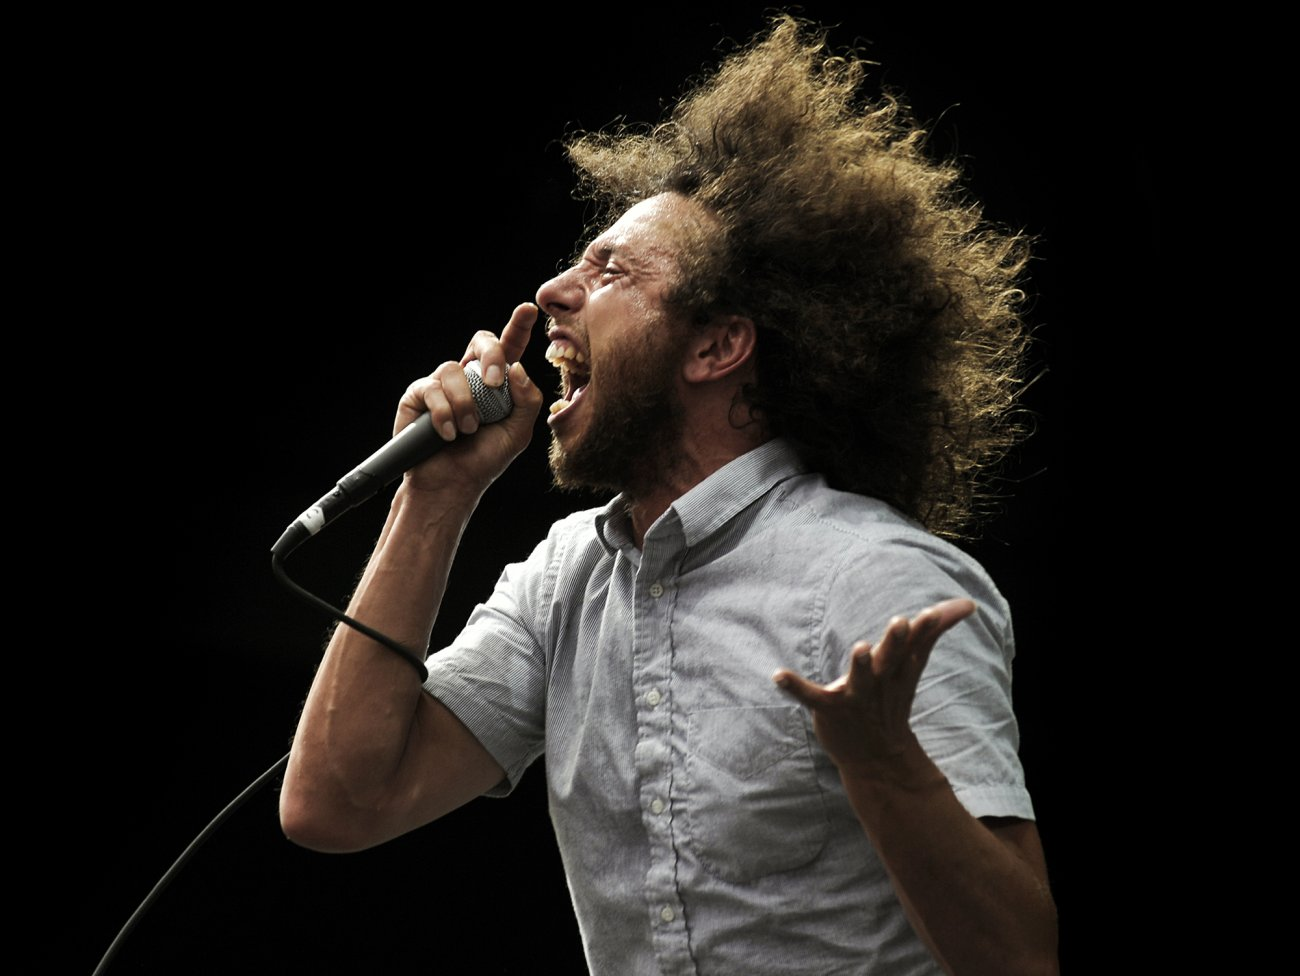 Happy birthday to Zack De La Rocha, the revolutionary voice of Rage Against The Machine.